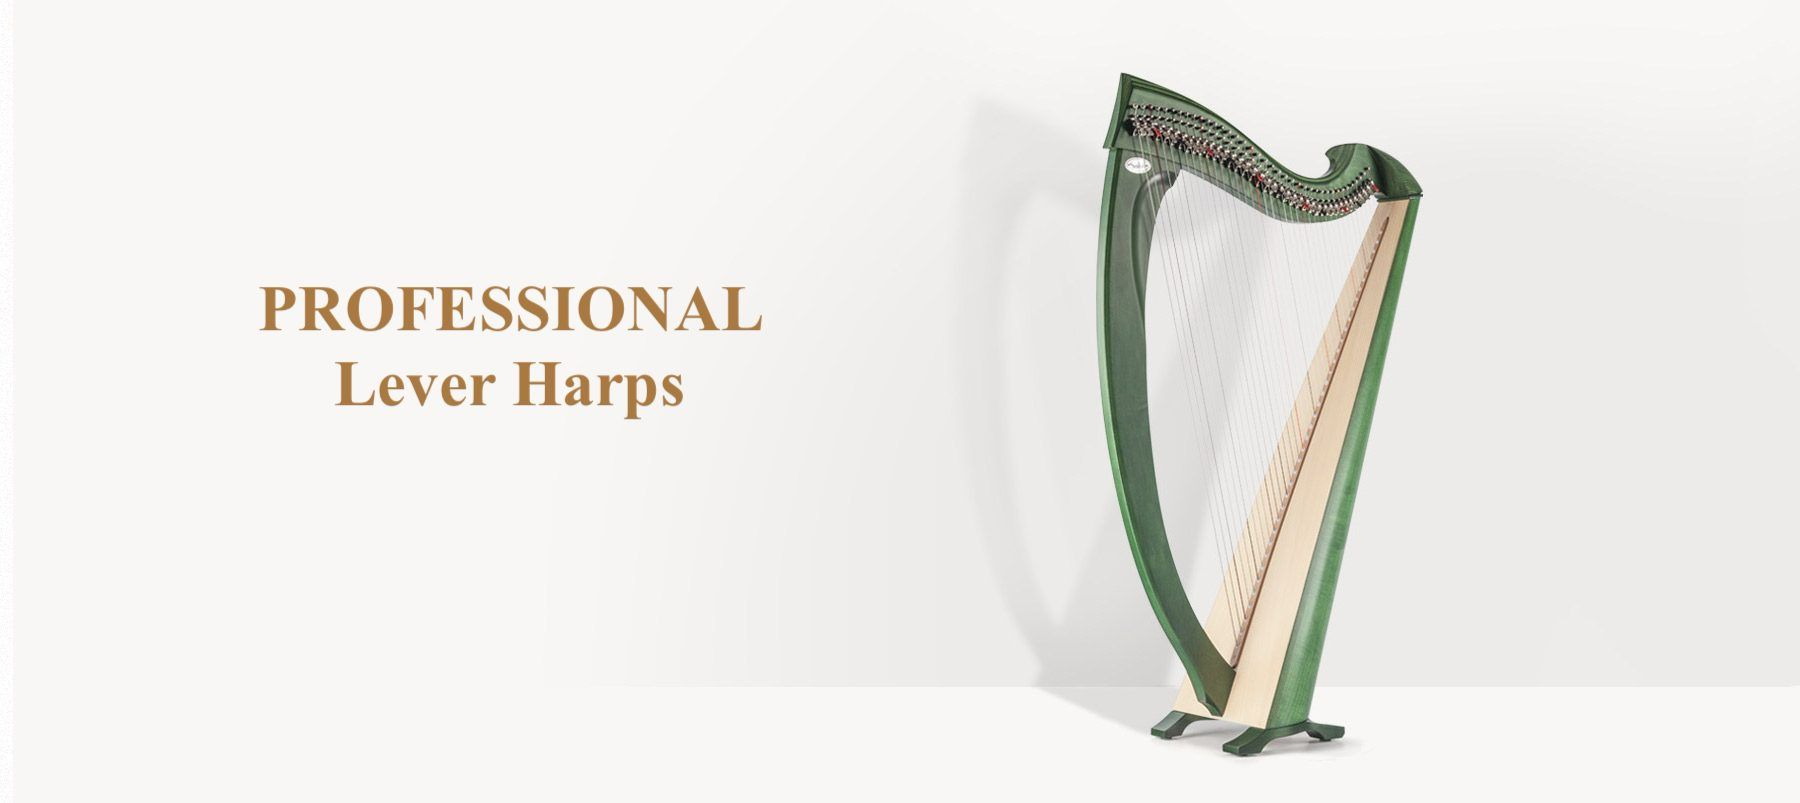 Professional Lever Harps